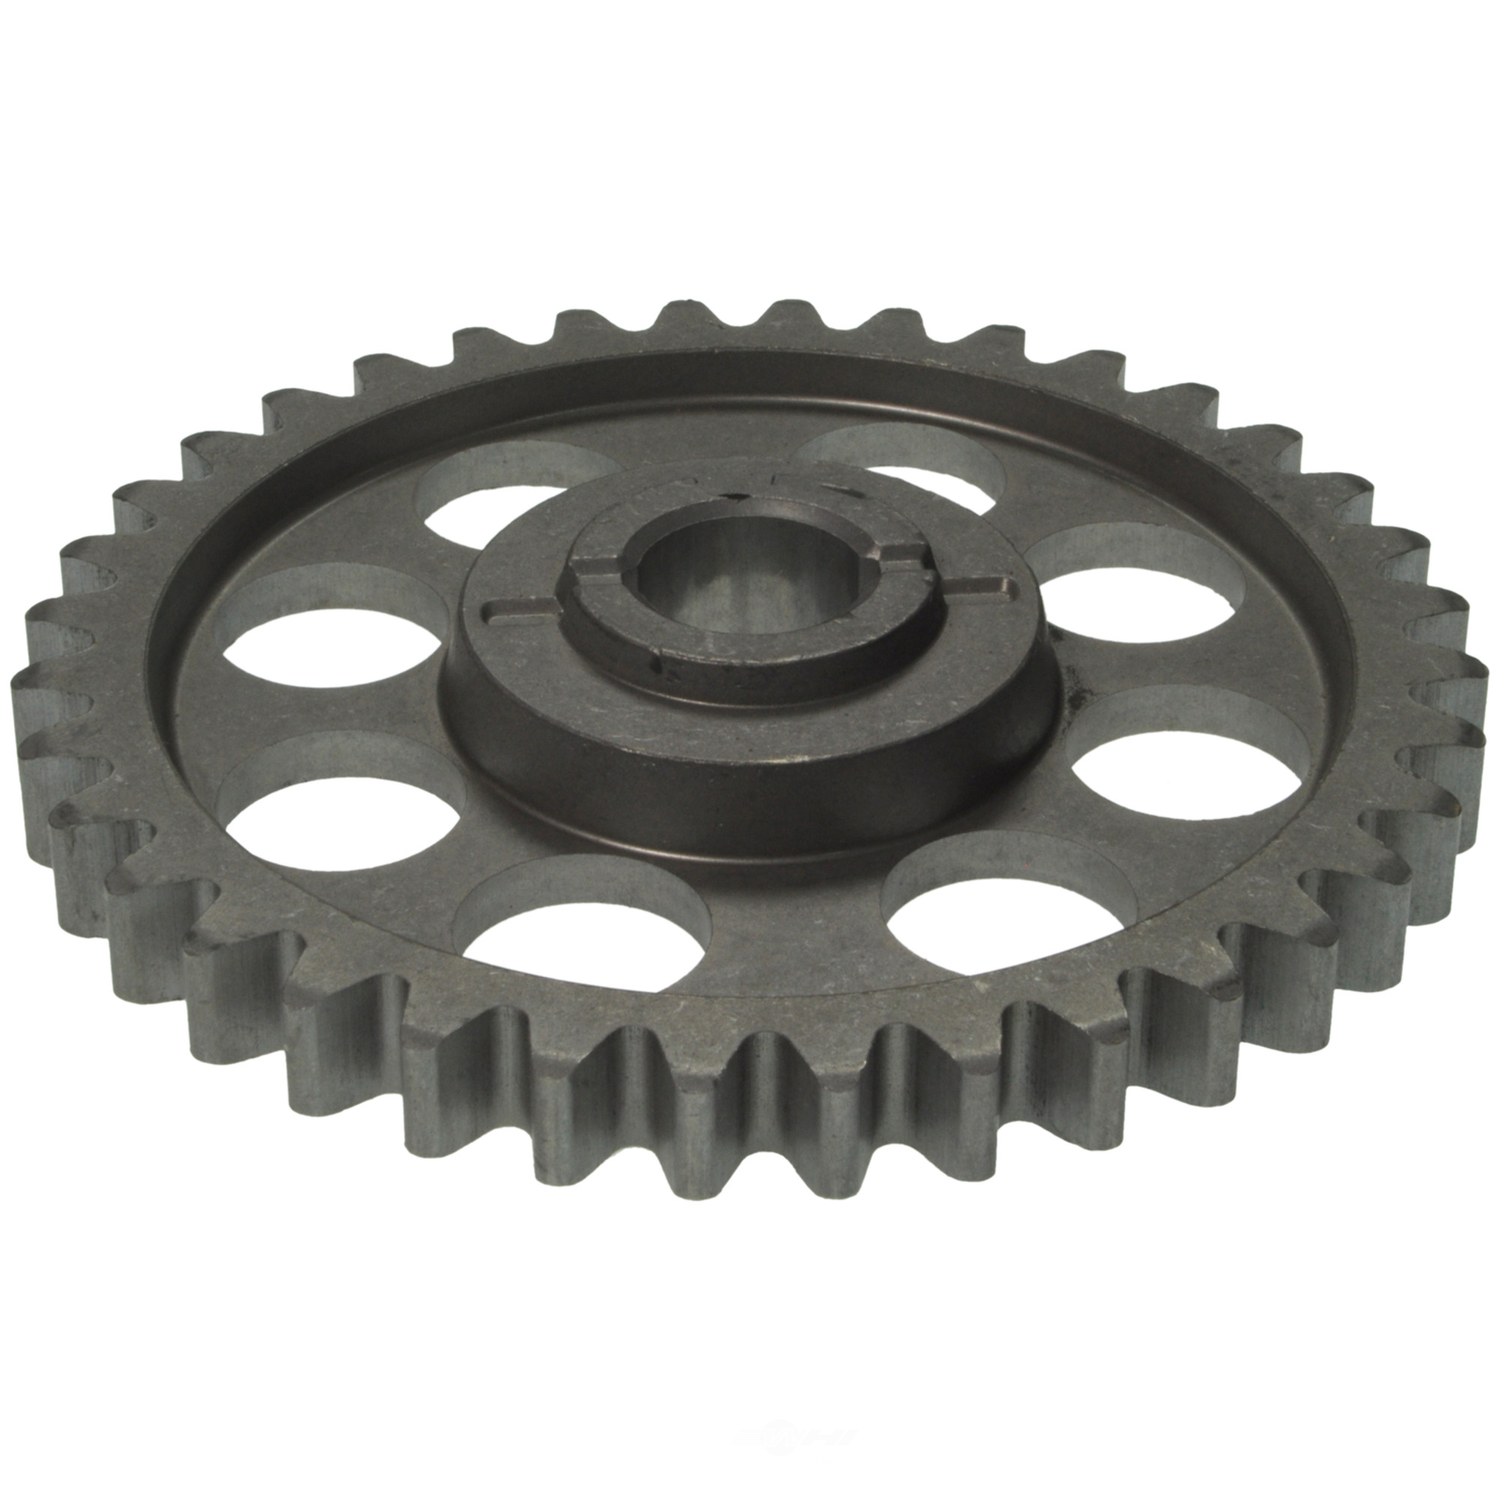 SEALED POWER - Engine Timing Camshaft Sprocket - SEA 223-420A